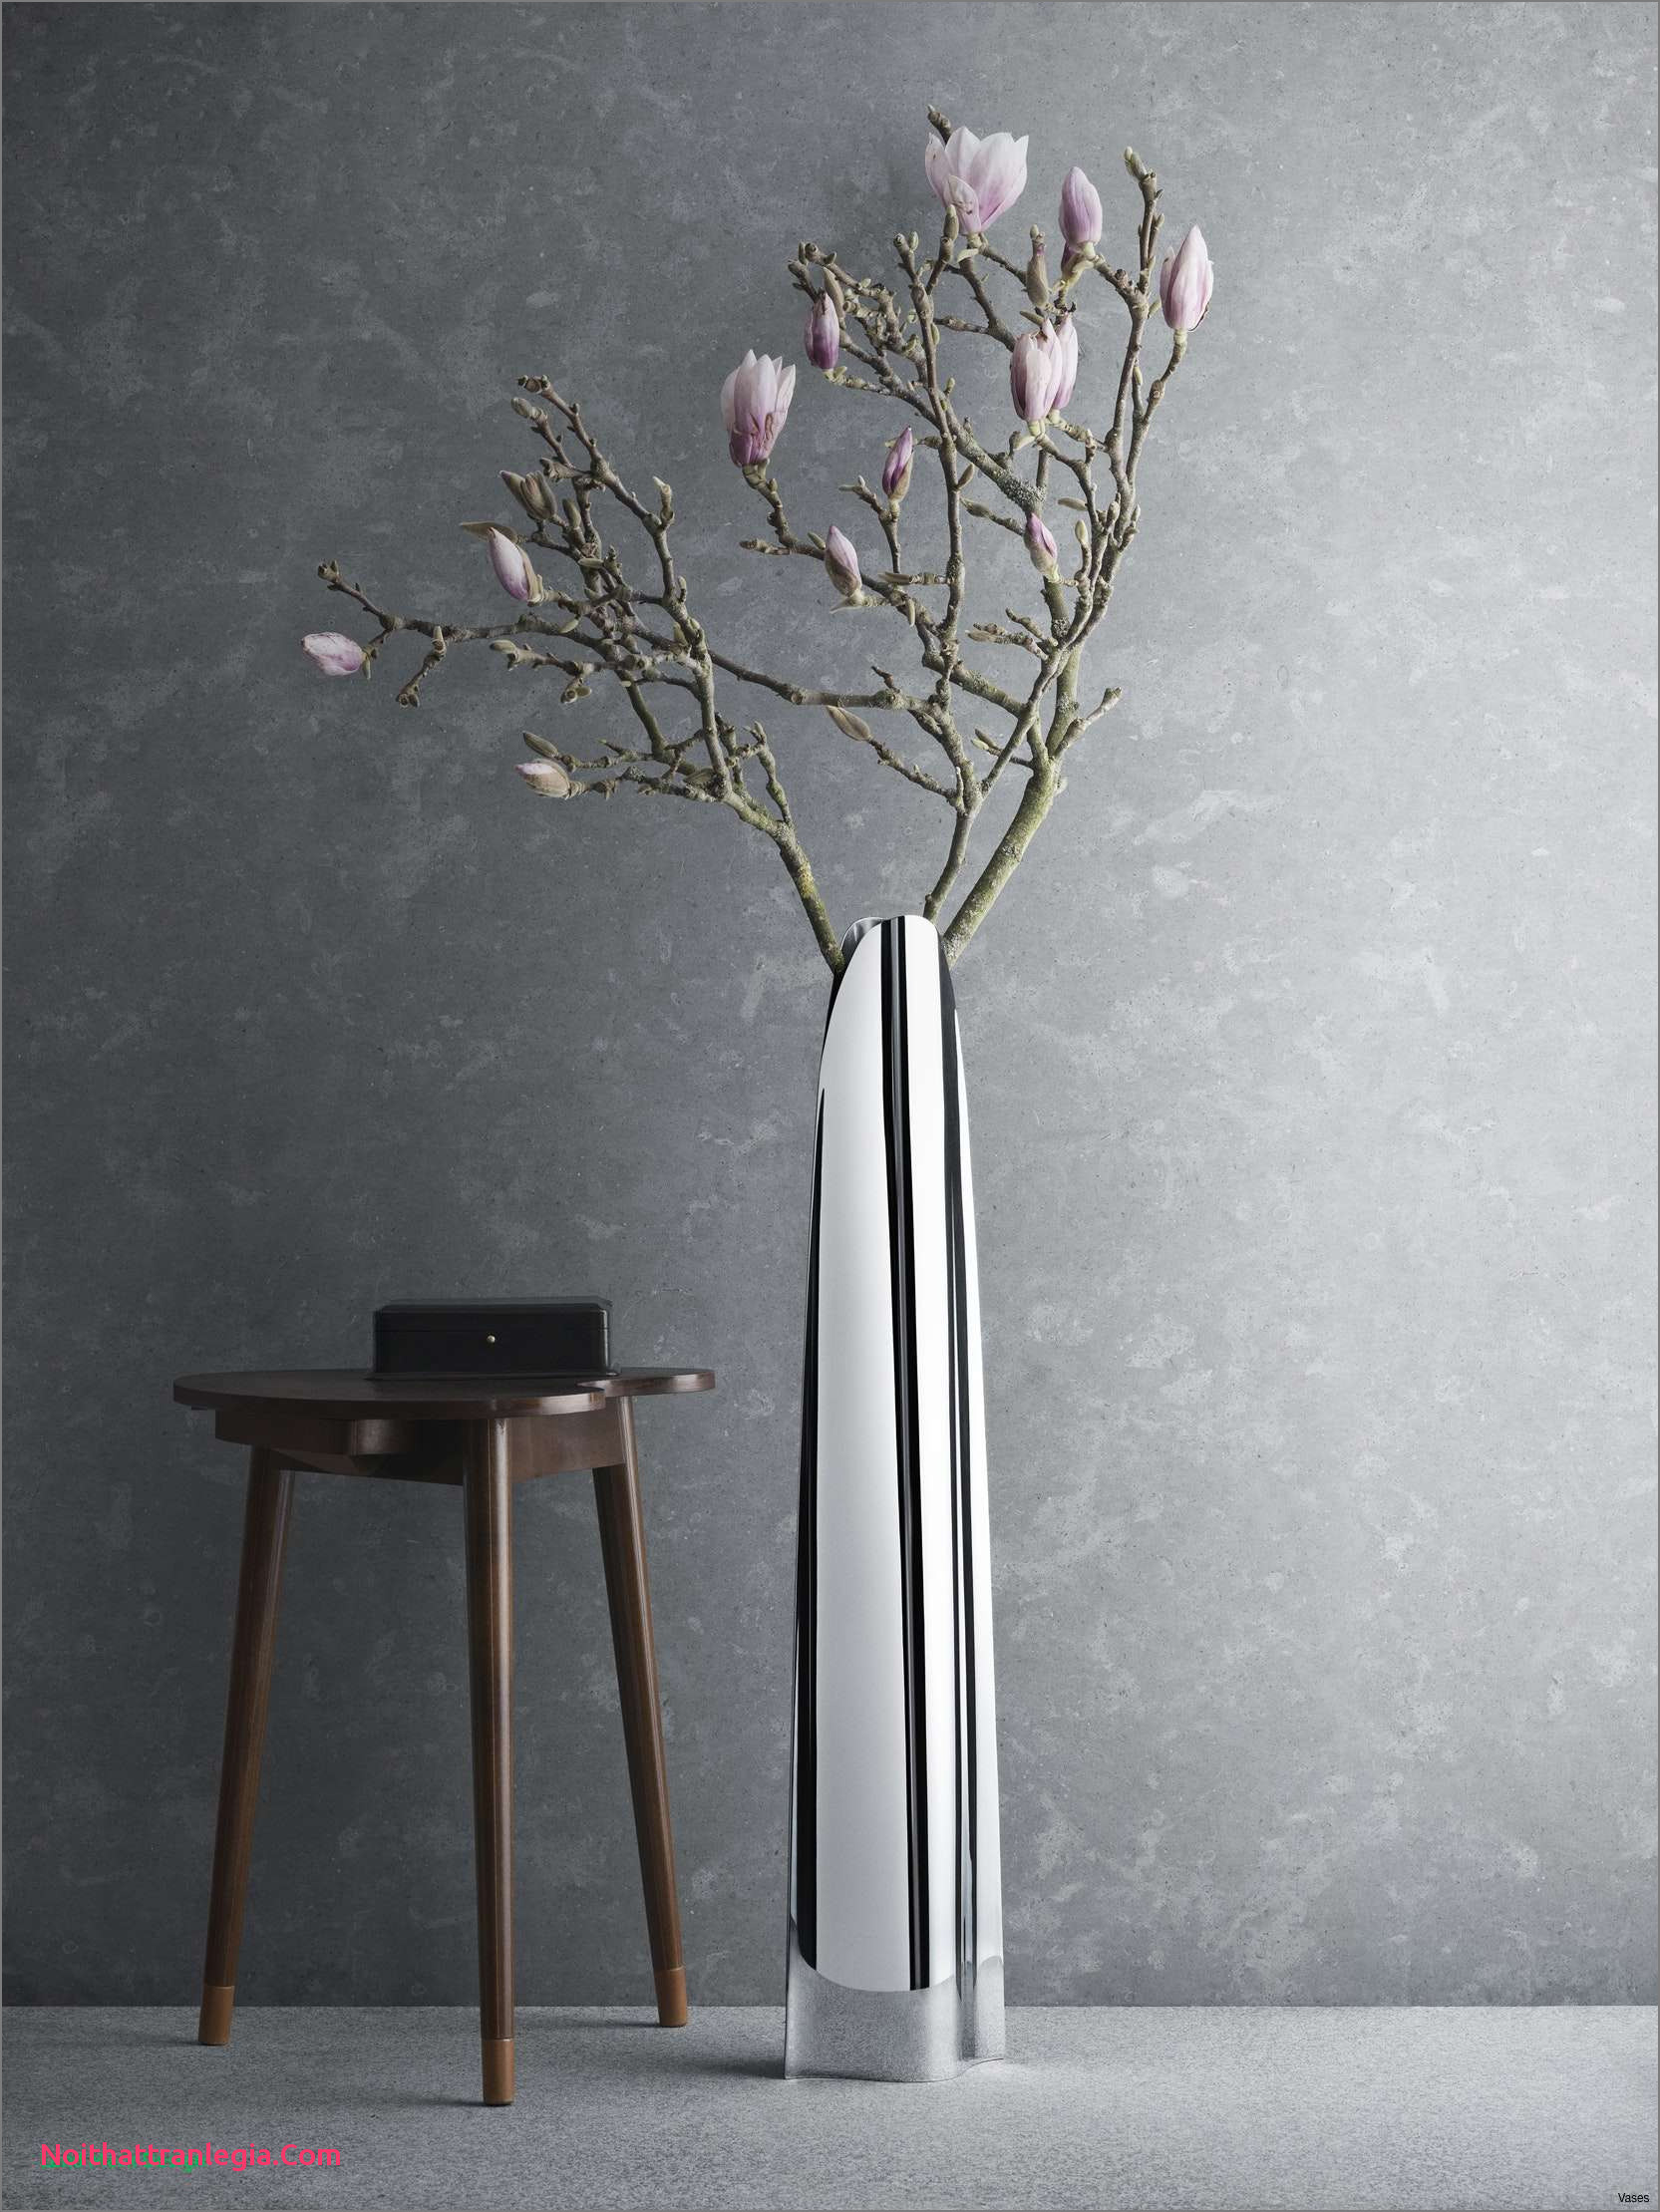 Large Floor Vases with Flowers Of 20 Large Floor Vase Nz Noithattranlegia Vases Design Throughout Appealing Modern Floor Vases 144 Silver Floorh Contemporary Vase Full Sizei 0d Floor Vase Flowers Design From Large